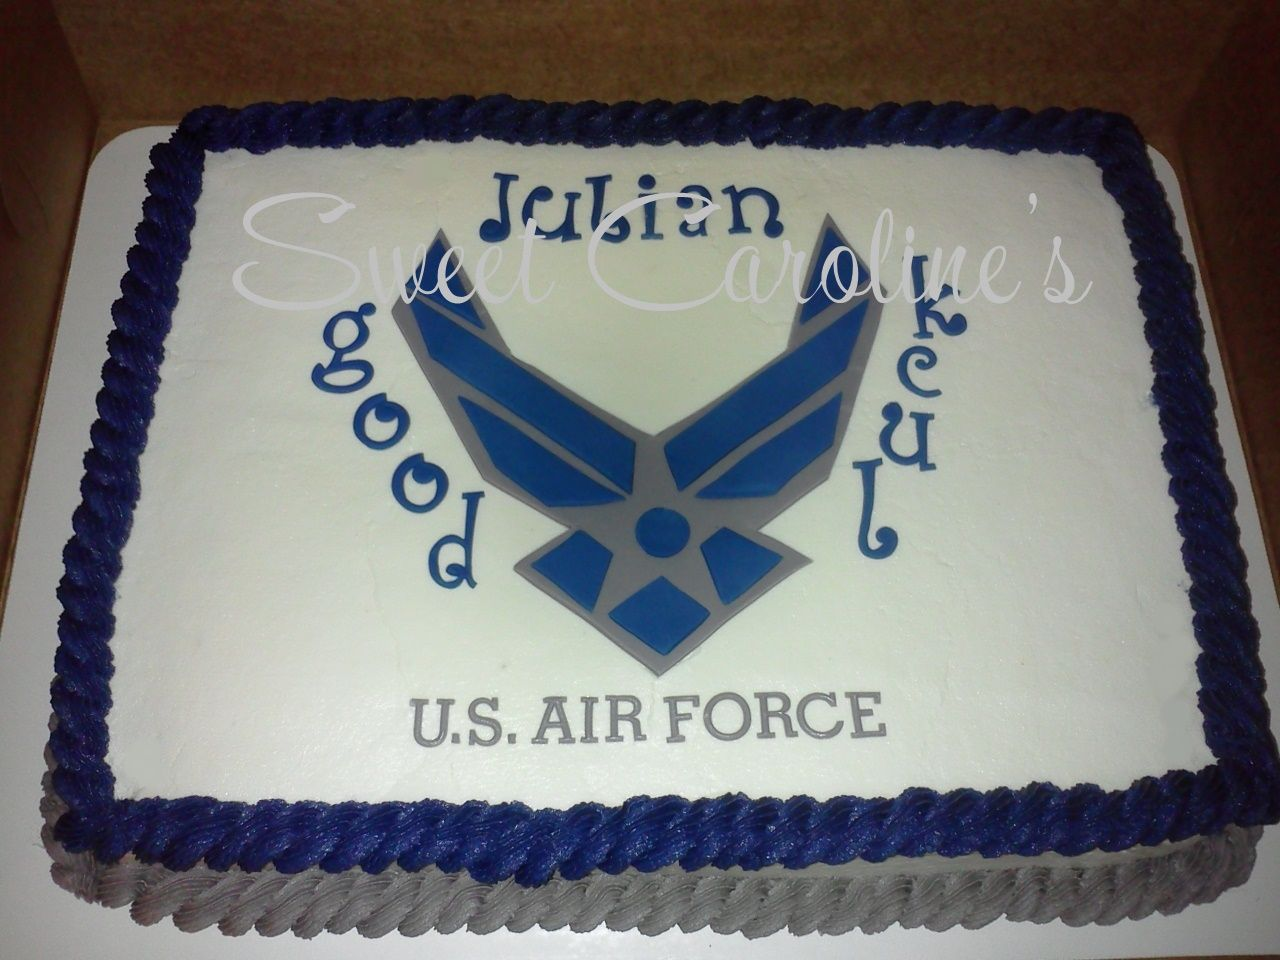 Air force cake decorations home furniture decors creating the - U S Air Force Cake